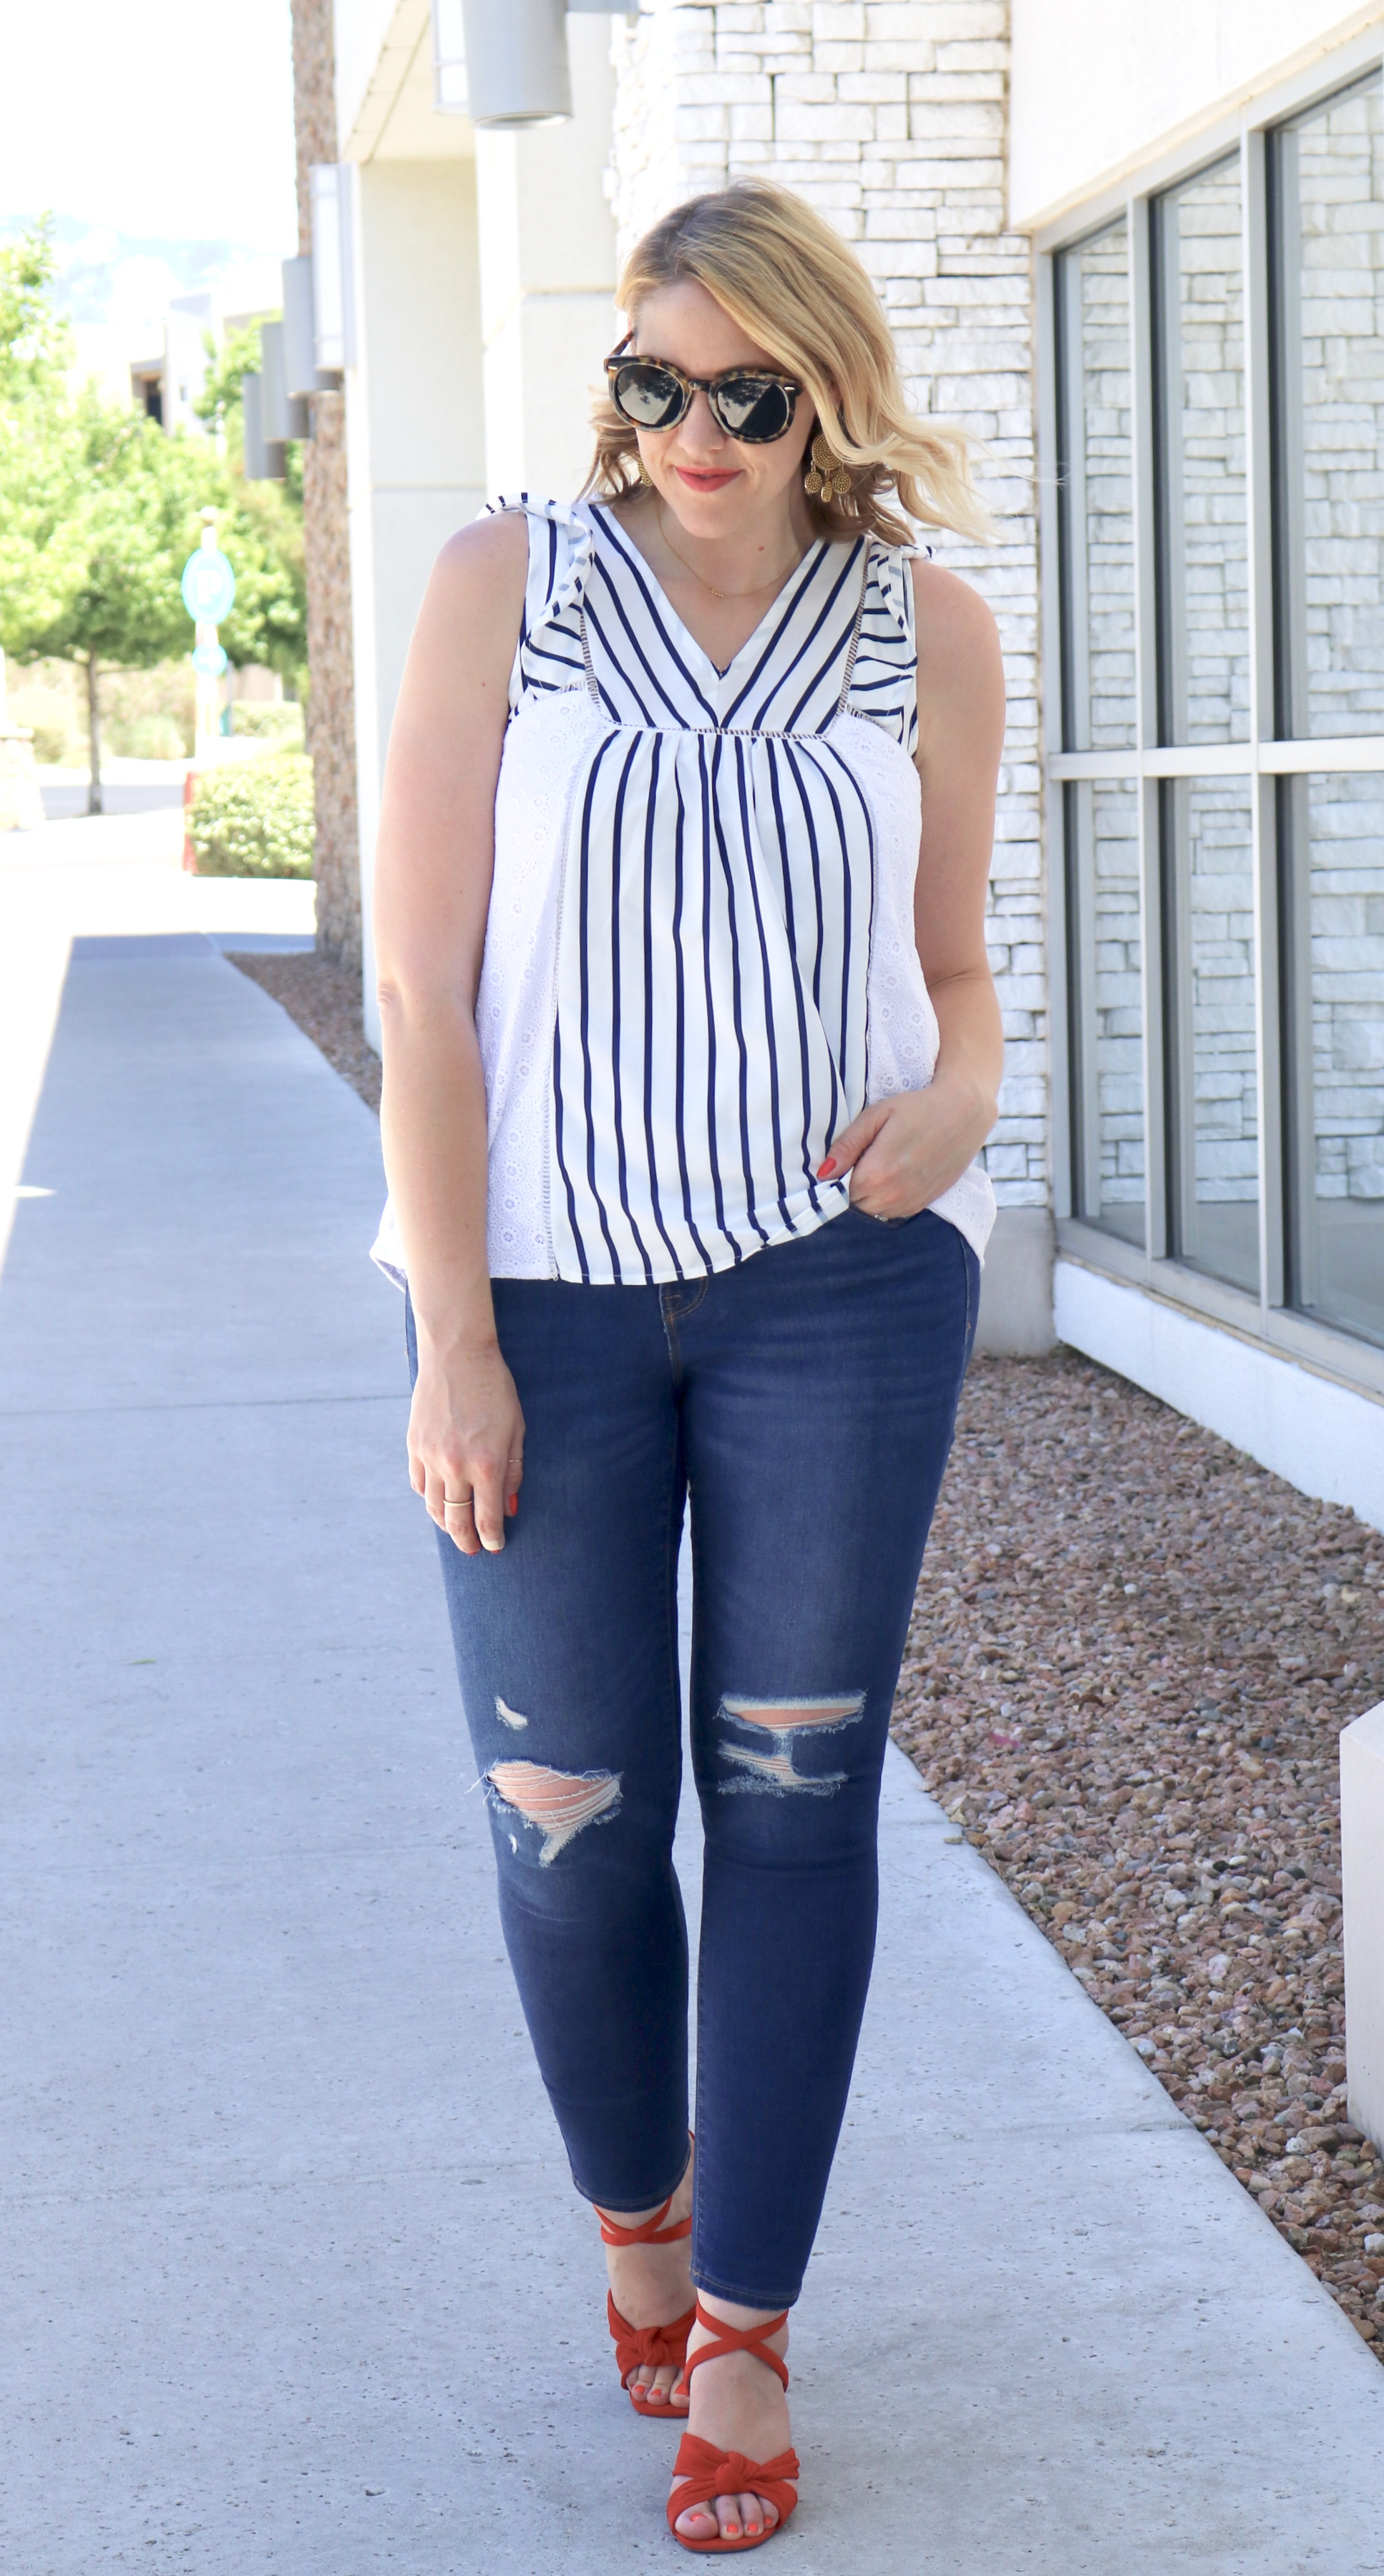 fourth of july outfit ideas #fourthofjuly #summerstyle #summer #outfitideas